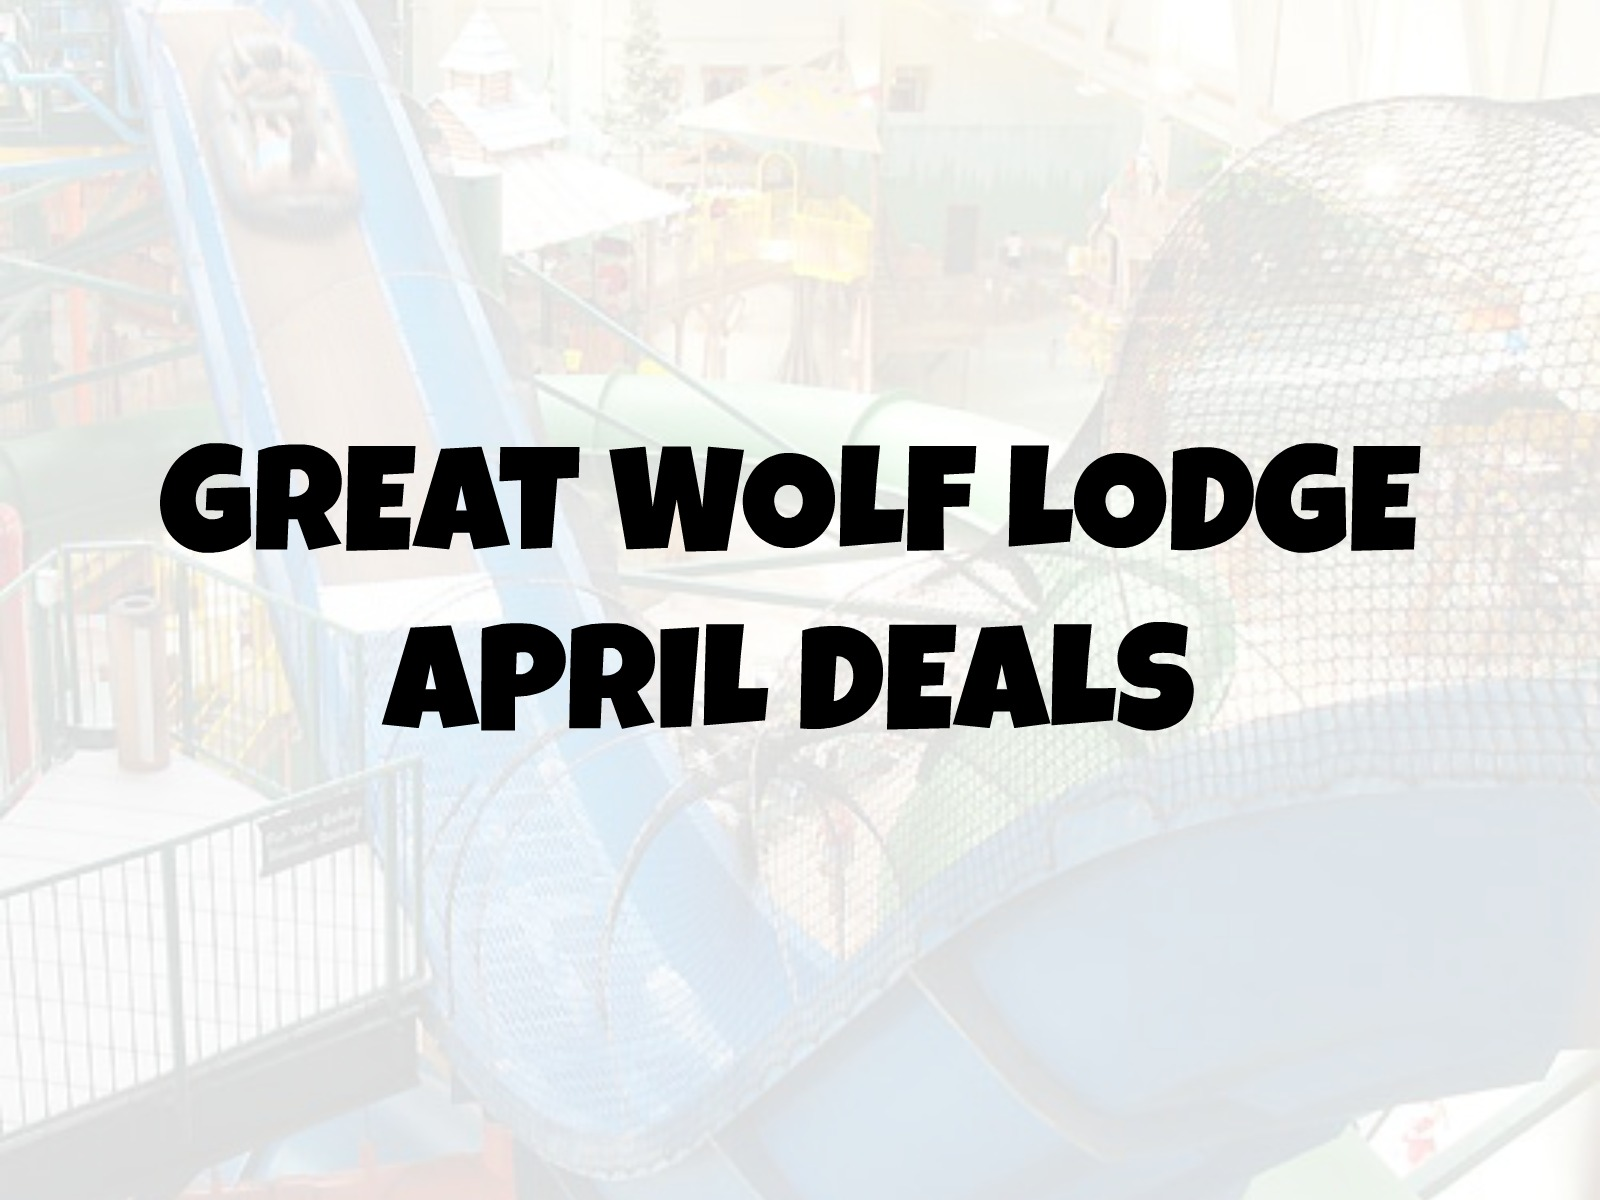 GREAT WOLF LODGE APRIL DEALS